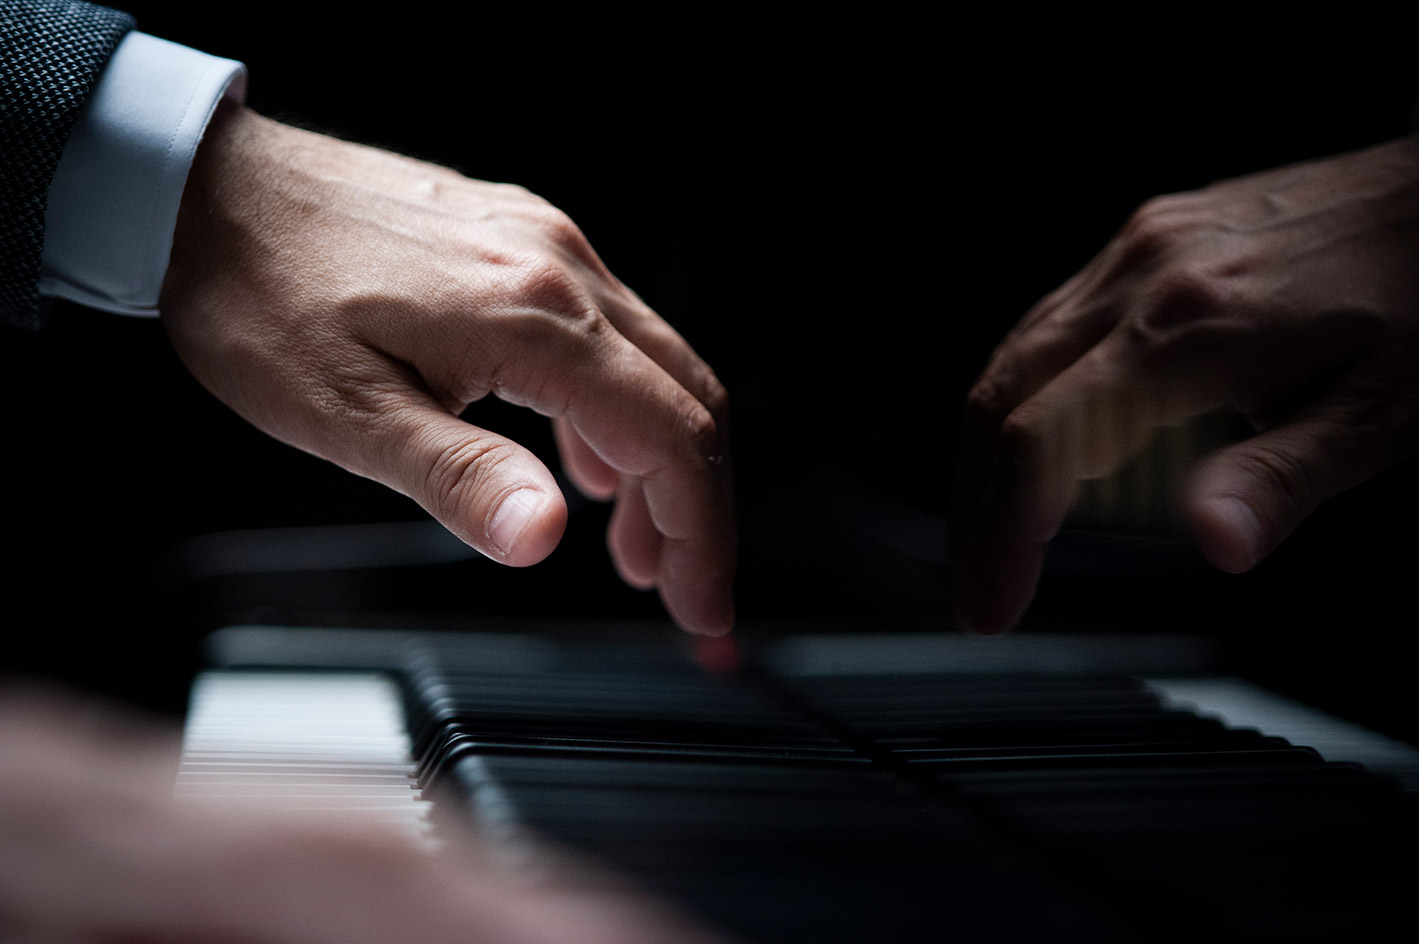 Fabio di Biase hands playing piano